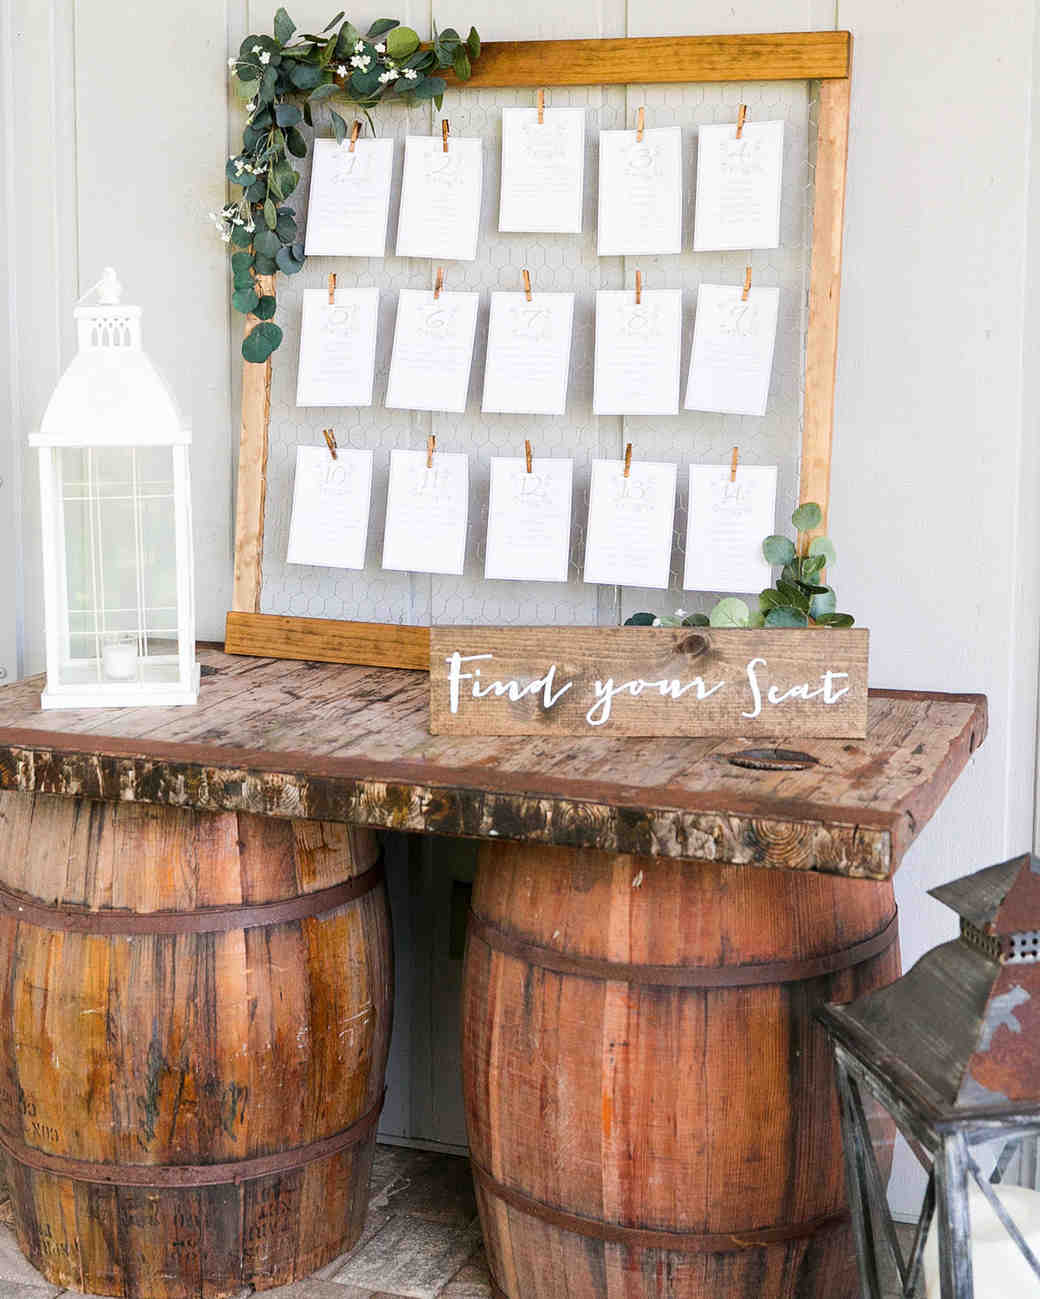 Romantic Rustic Wedding Inspiration: 26 Rustic Wedding Ideas That Still Feel Elevated